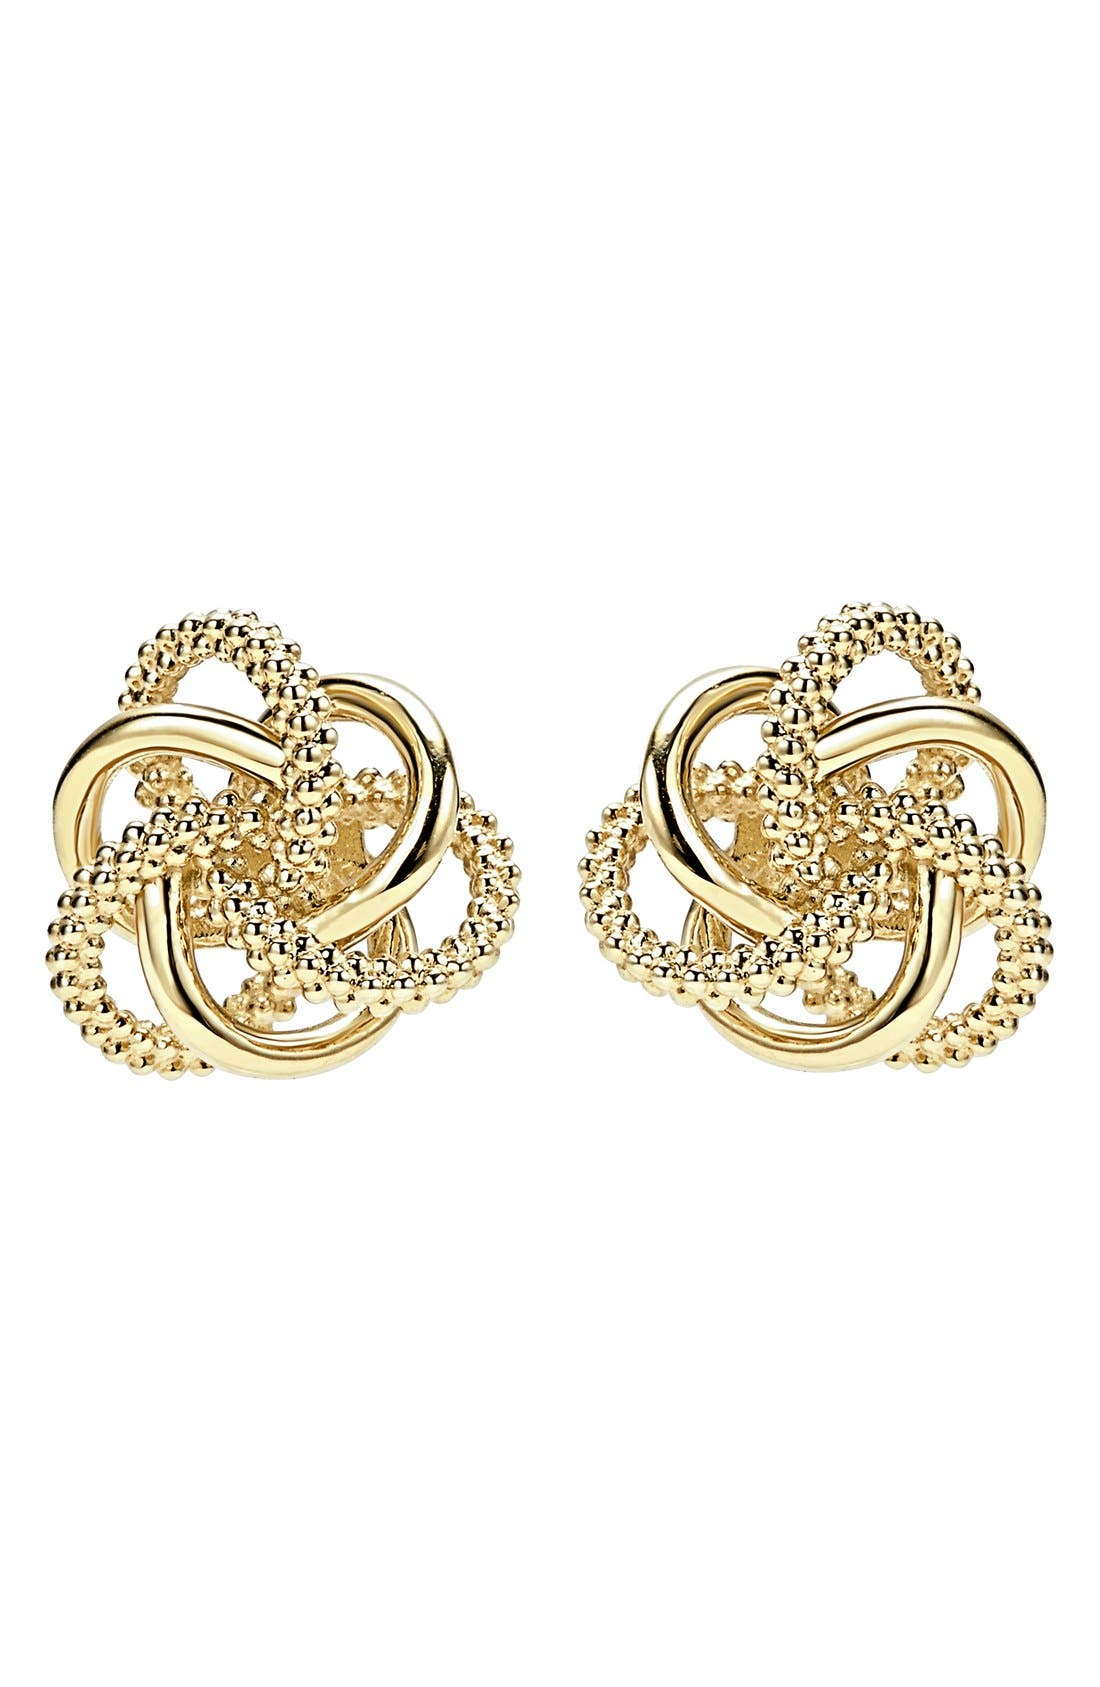 'Love Knot' 18k Gold Stud Earrings,                             Alternate thumbnail 5, color,                             GOLD